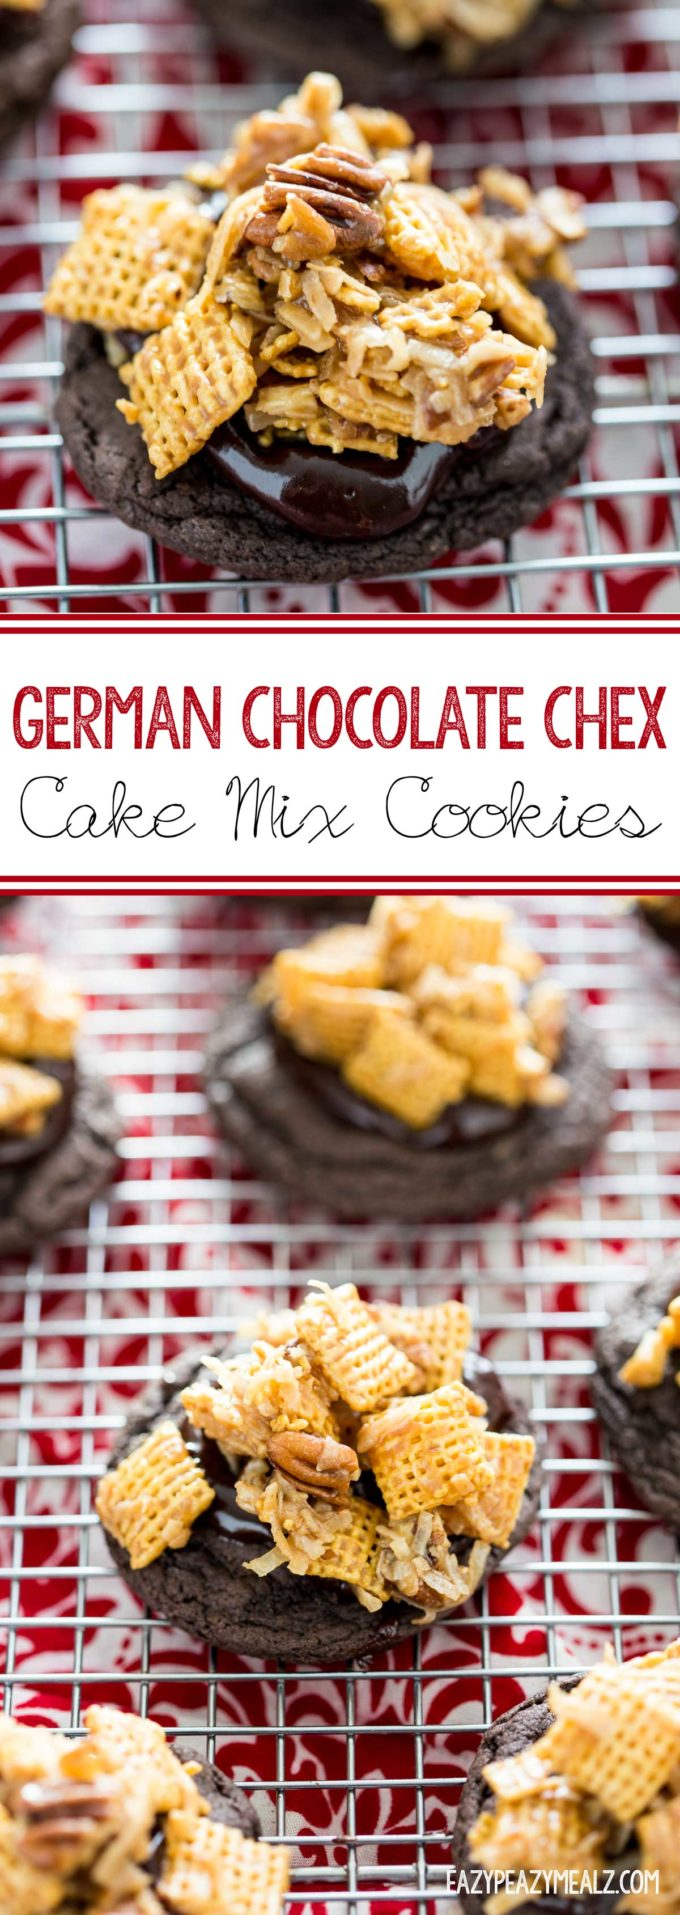 pin-for-german-chocolate-chex-cake-mix-cookies